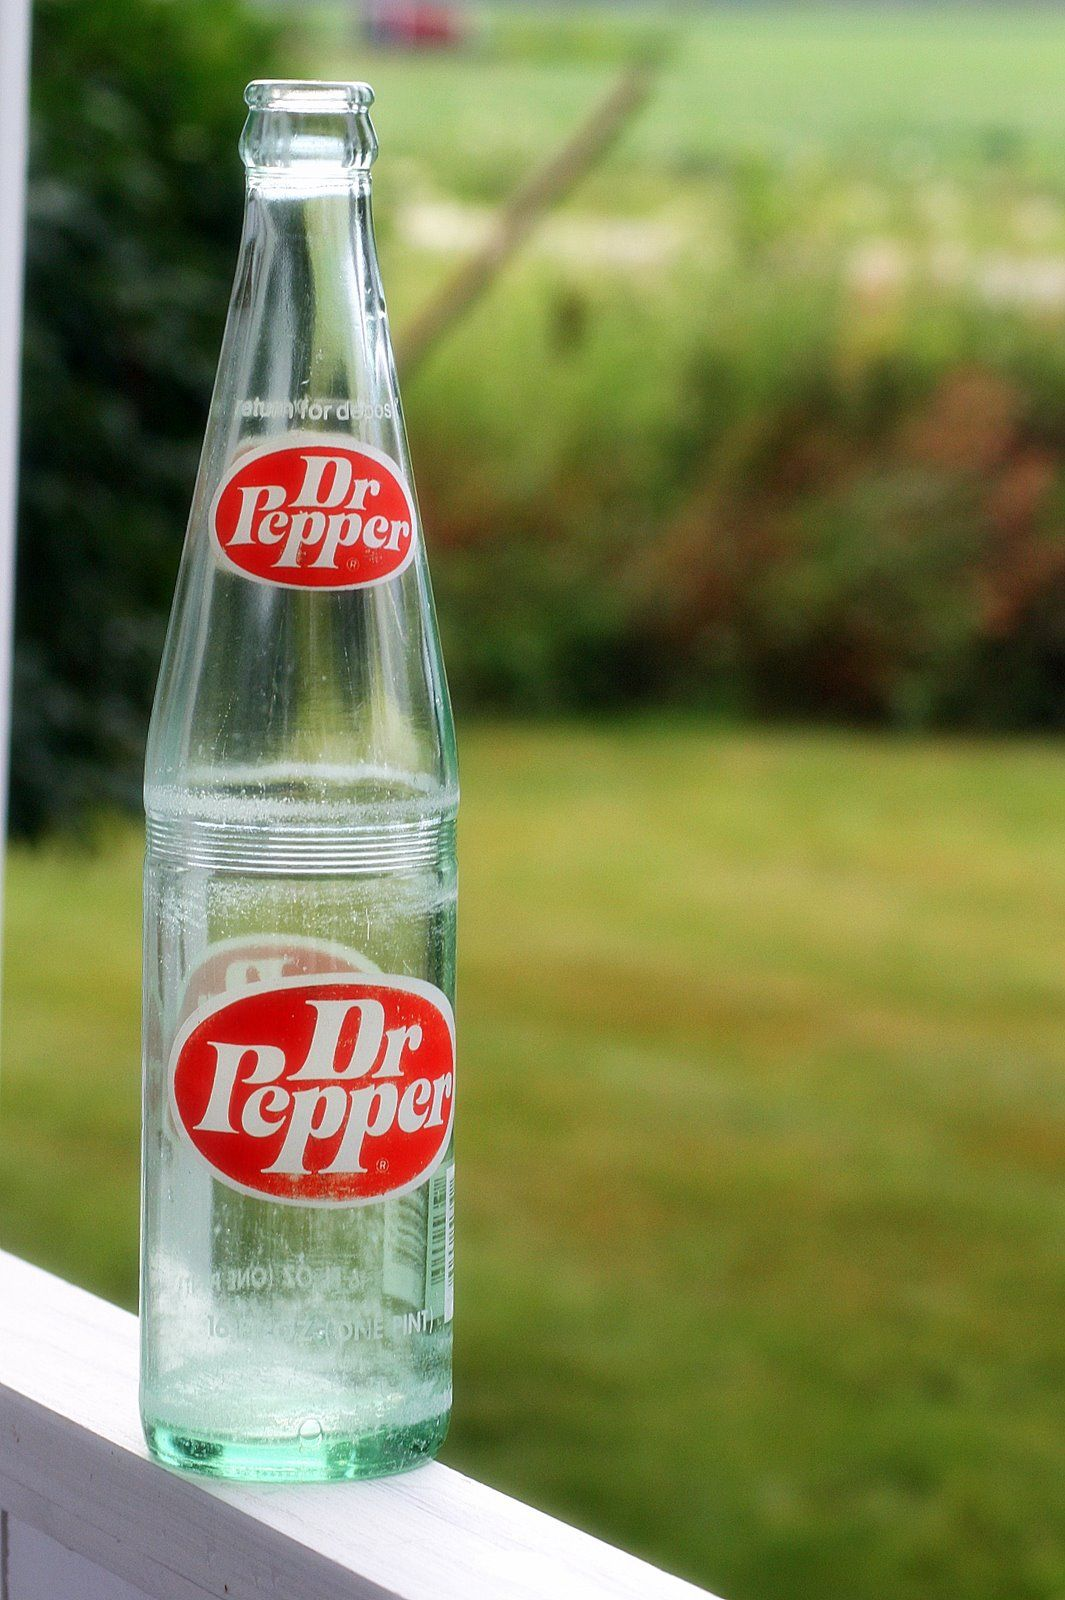 Dr pepper my grandma drank dr pepper and i drink it too